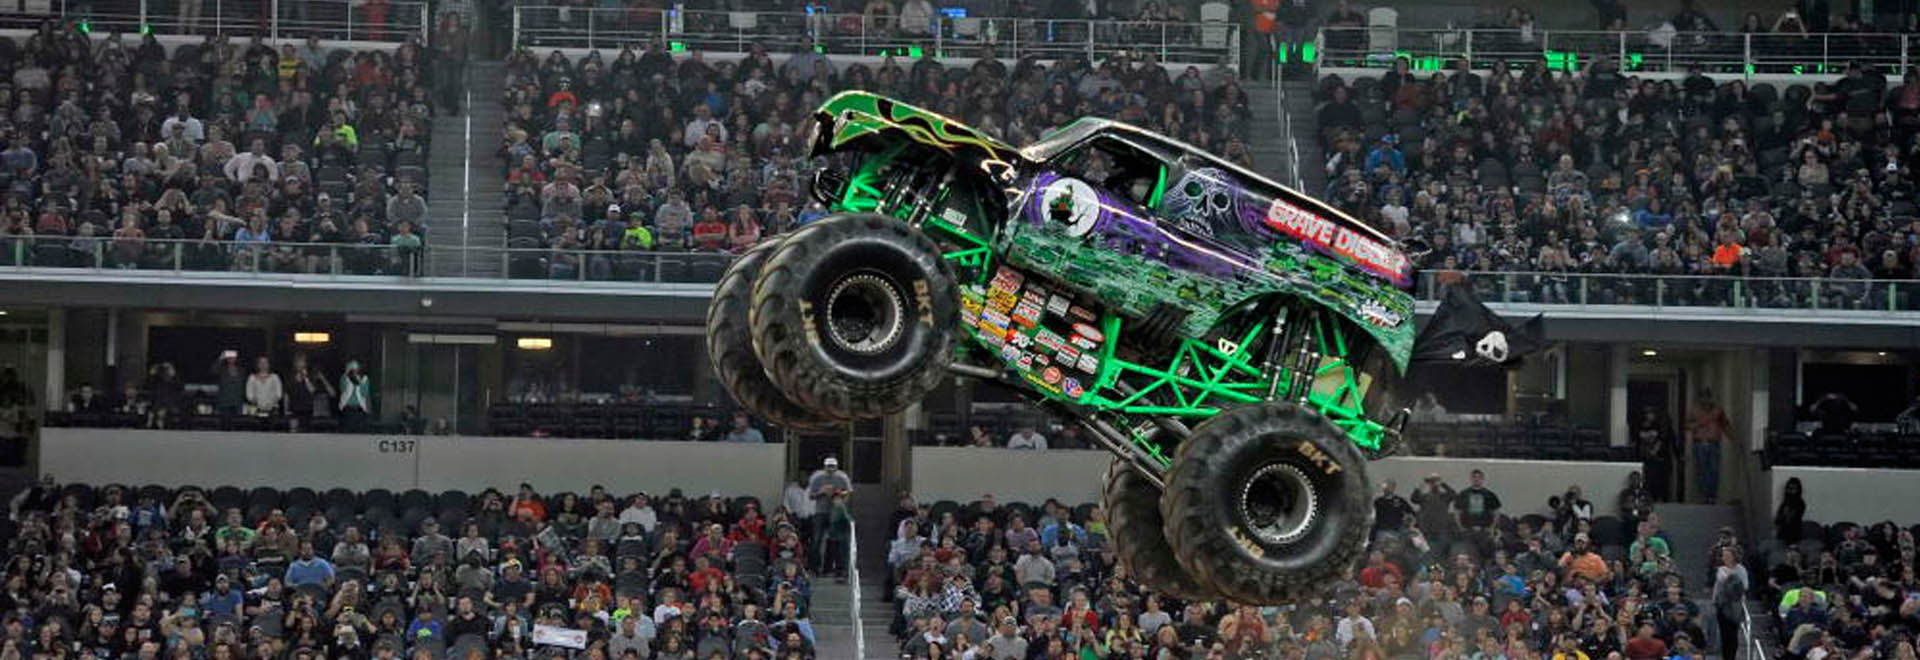 Monster Jam® is adrenaline-charged family entertainment providing jaw-dropping displays and gravity-defying feats that promises to always leave fans entertained. Monster Jam events feature some of the most recognizable trucks in the world including Grave Digger®, Max-D, El Toro Loco® and many more.4/5(K).